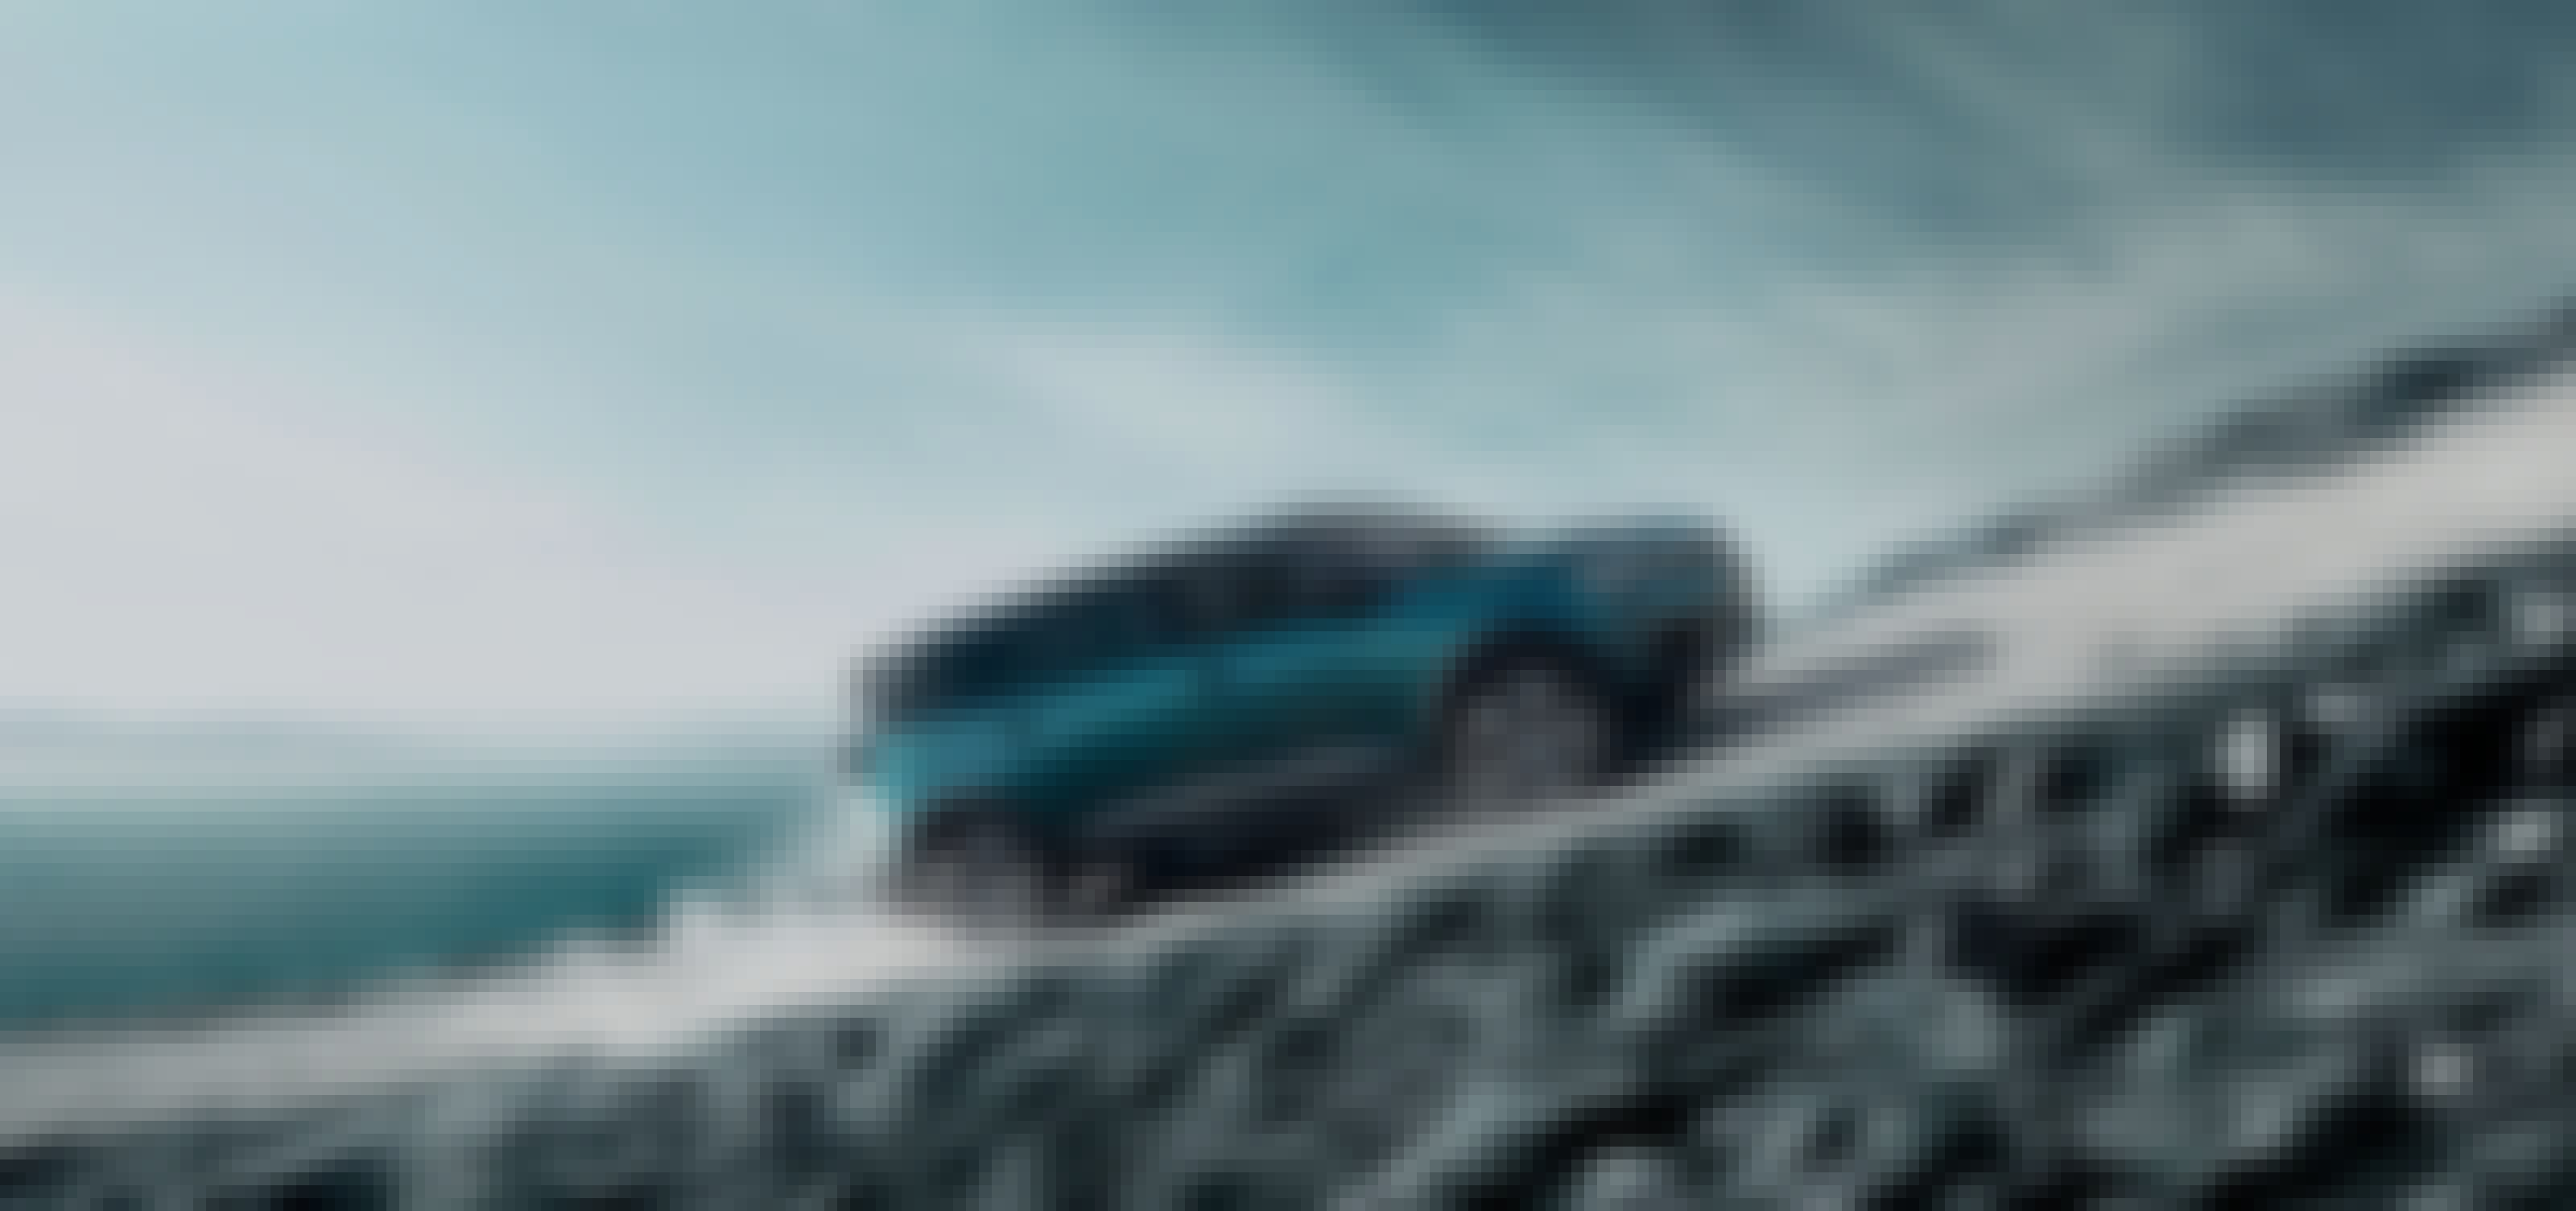 Blue peugeot 3008 driving on a steep slope